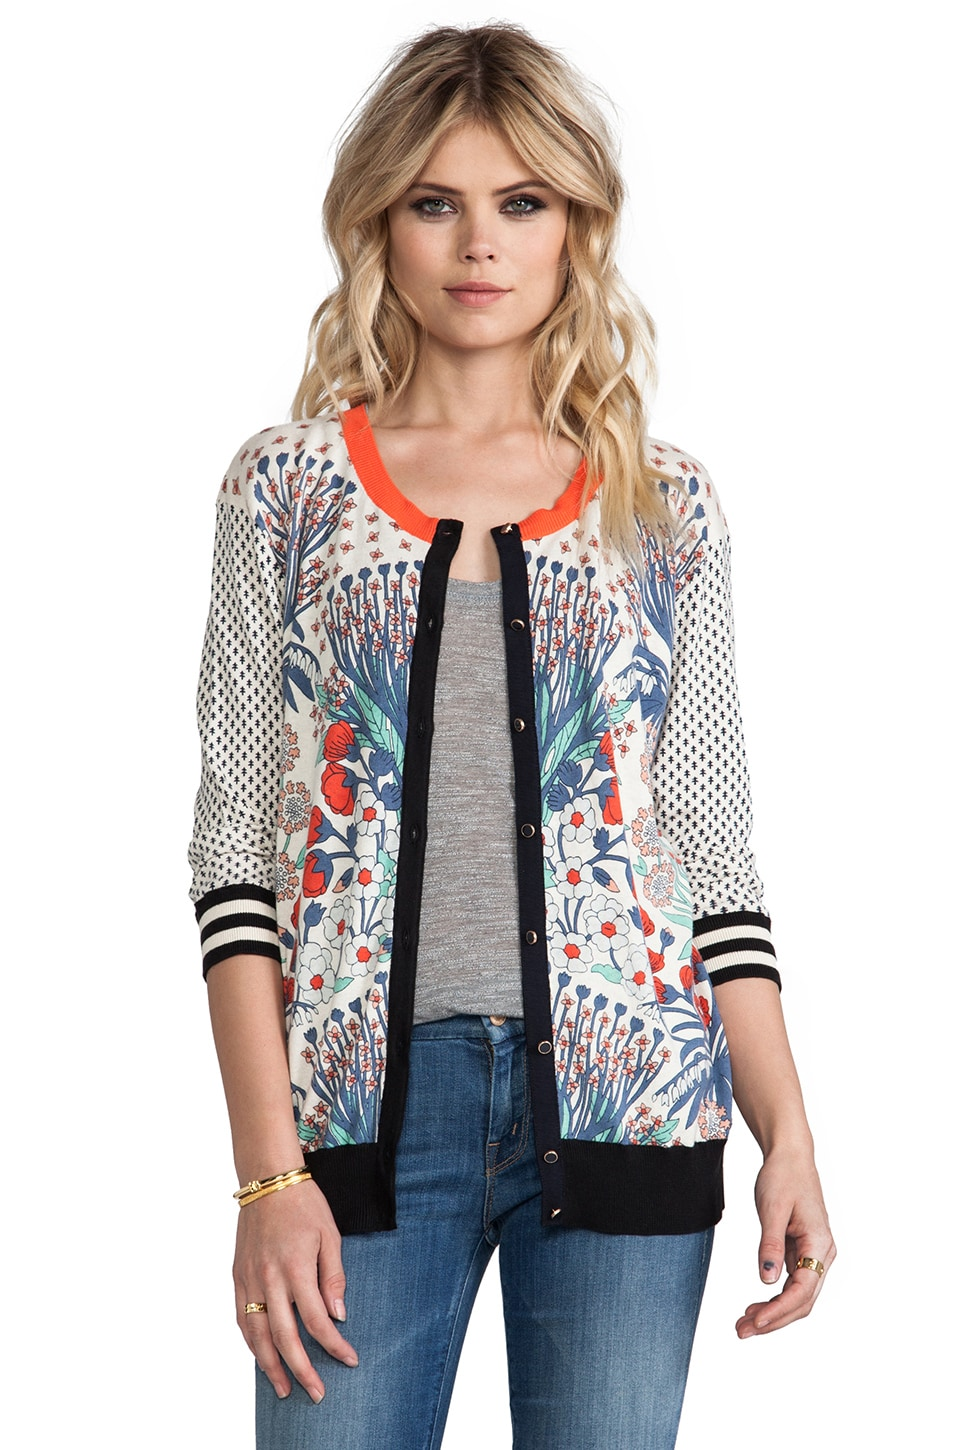 Marc by Marc Jacobs Madeline's Garden Printed Sweater in Bone Multi